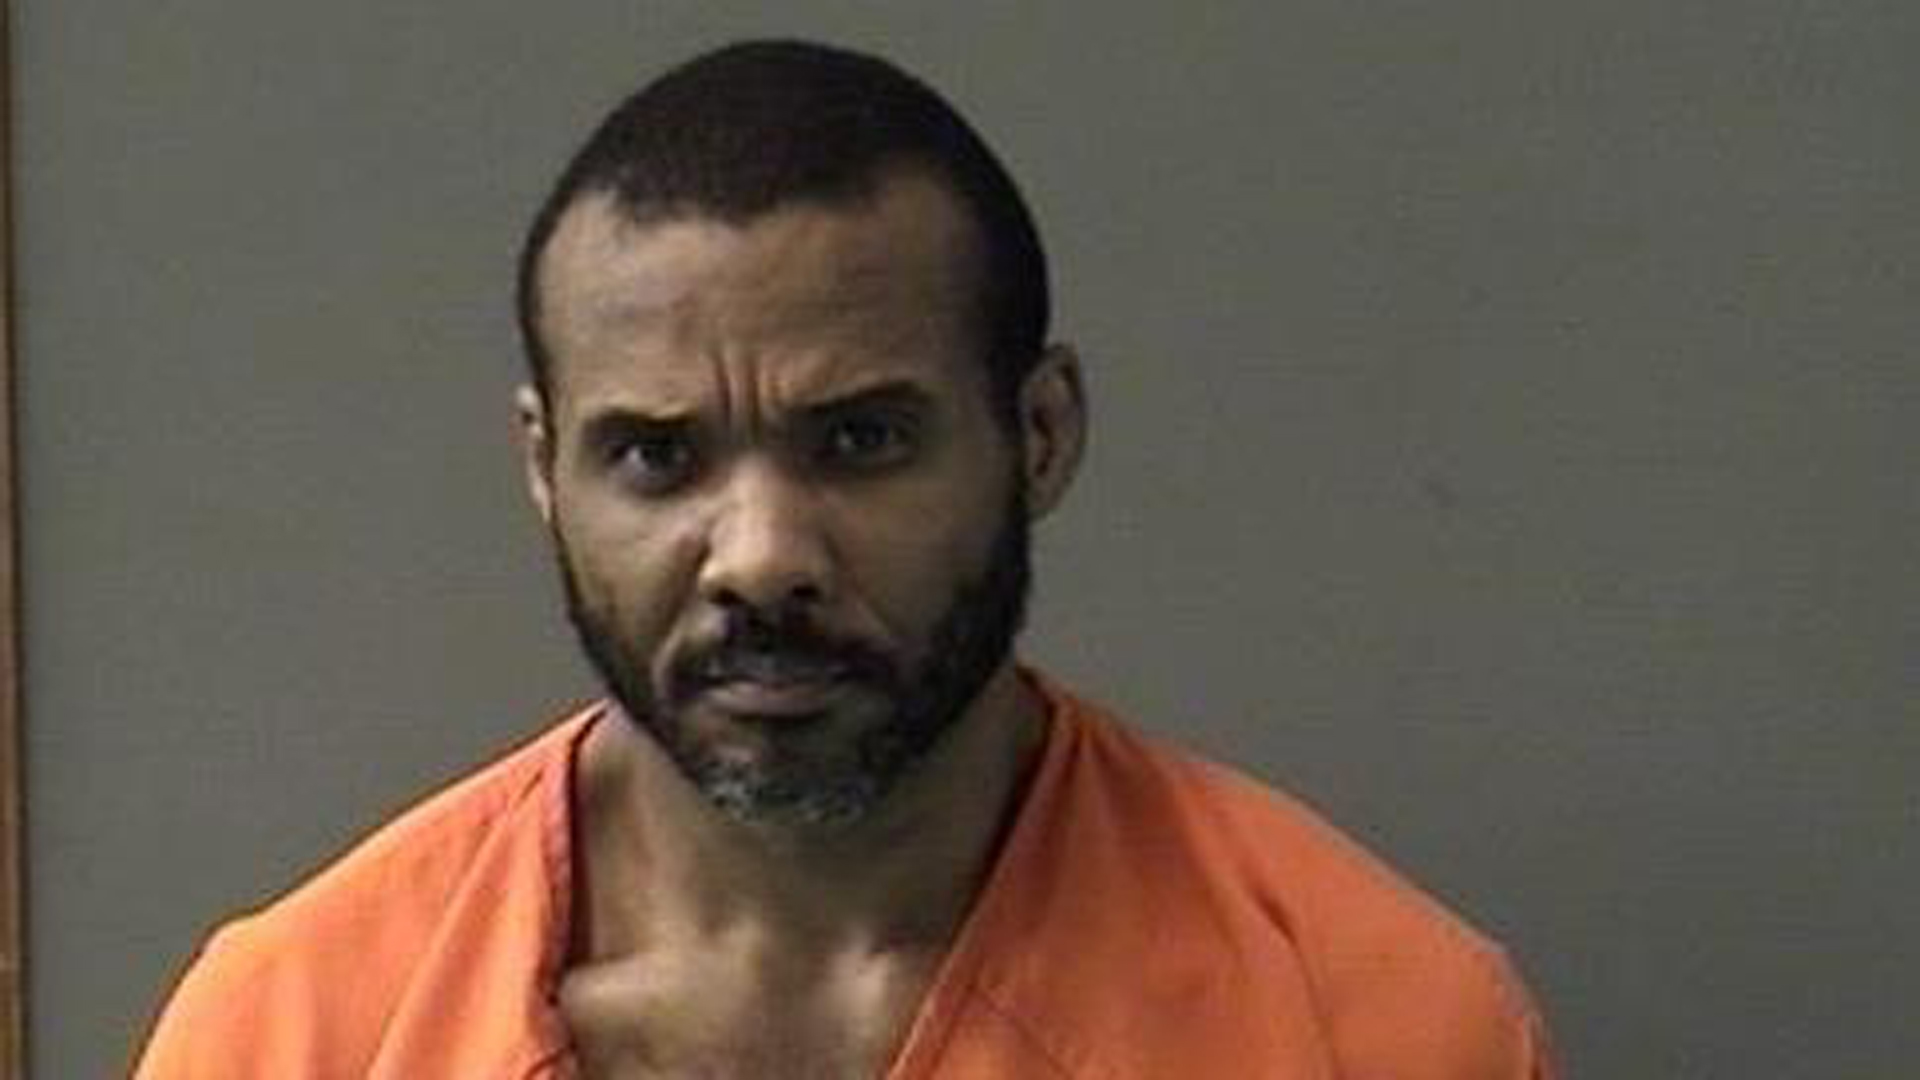 Cedric Marks is seen in a photo released by the Bell County Sheriff's Office.